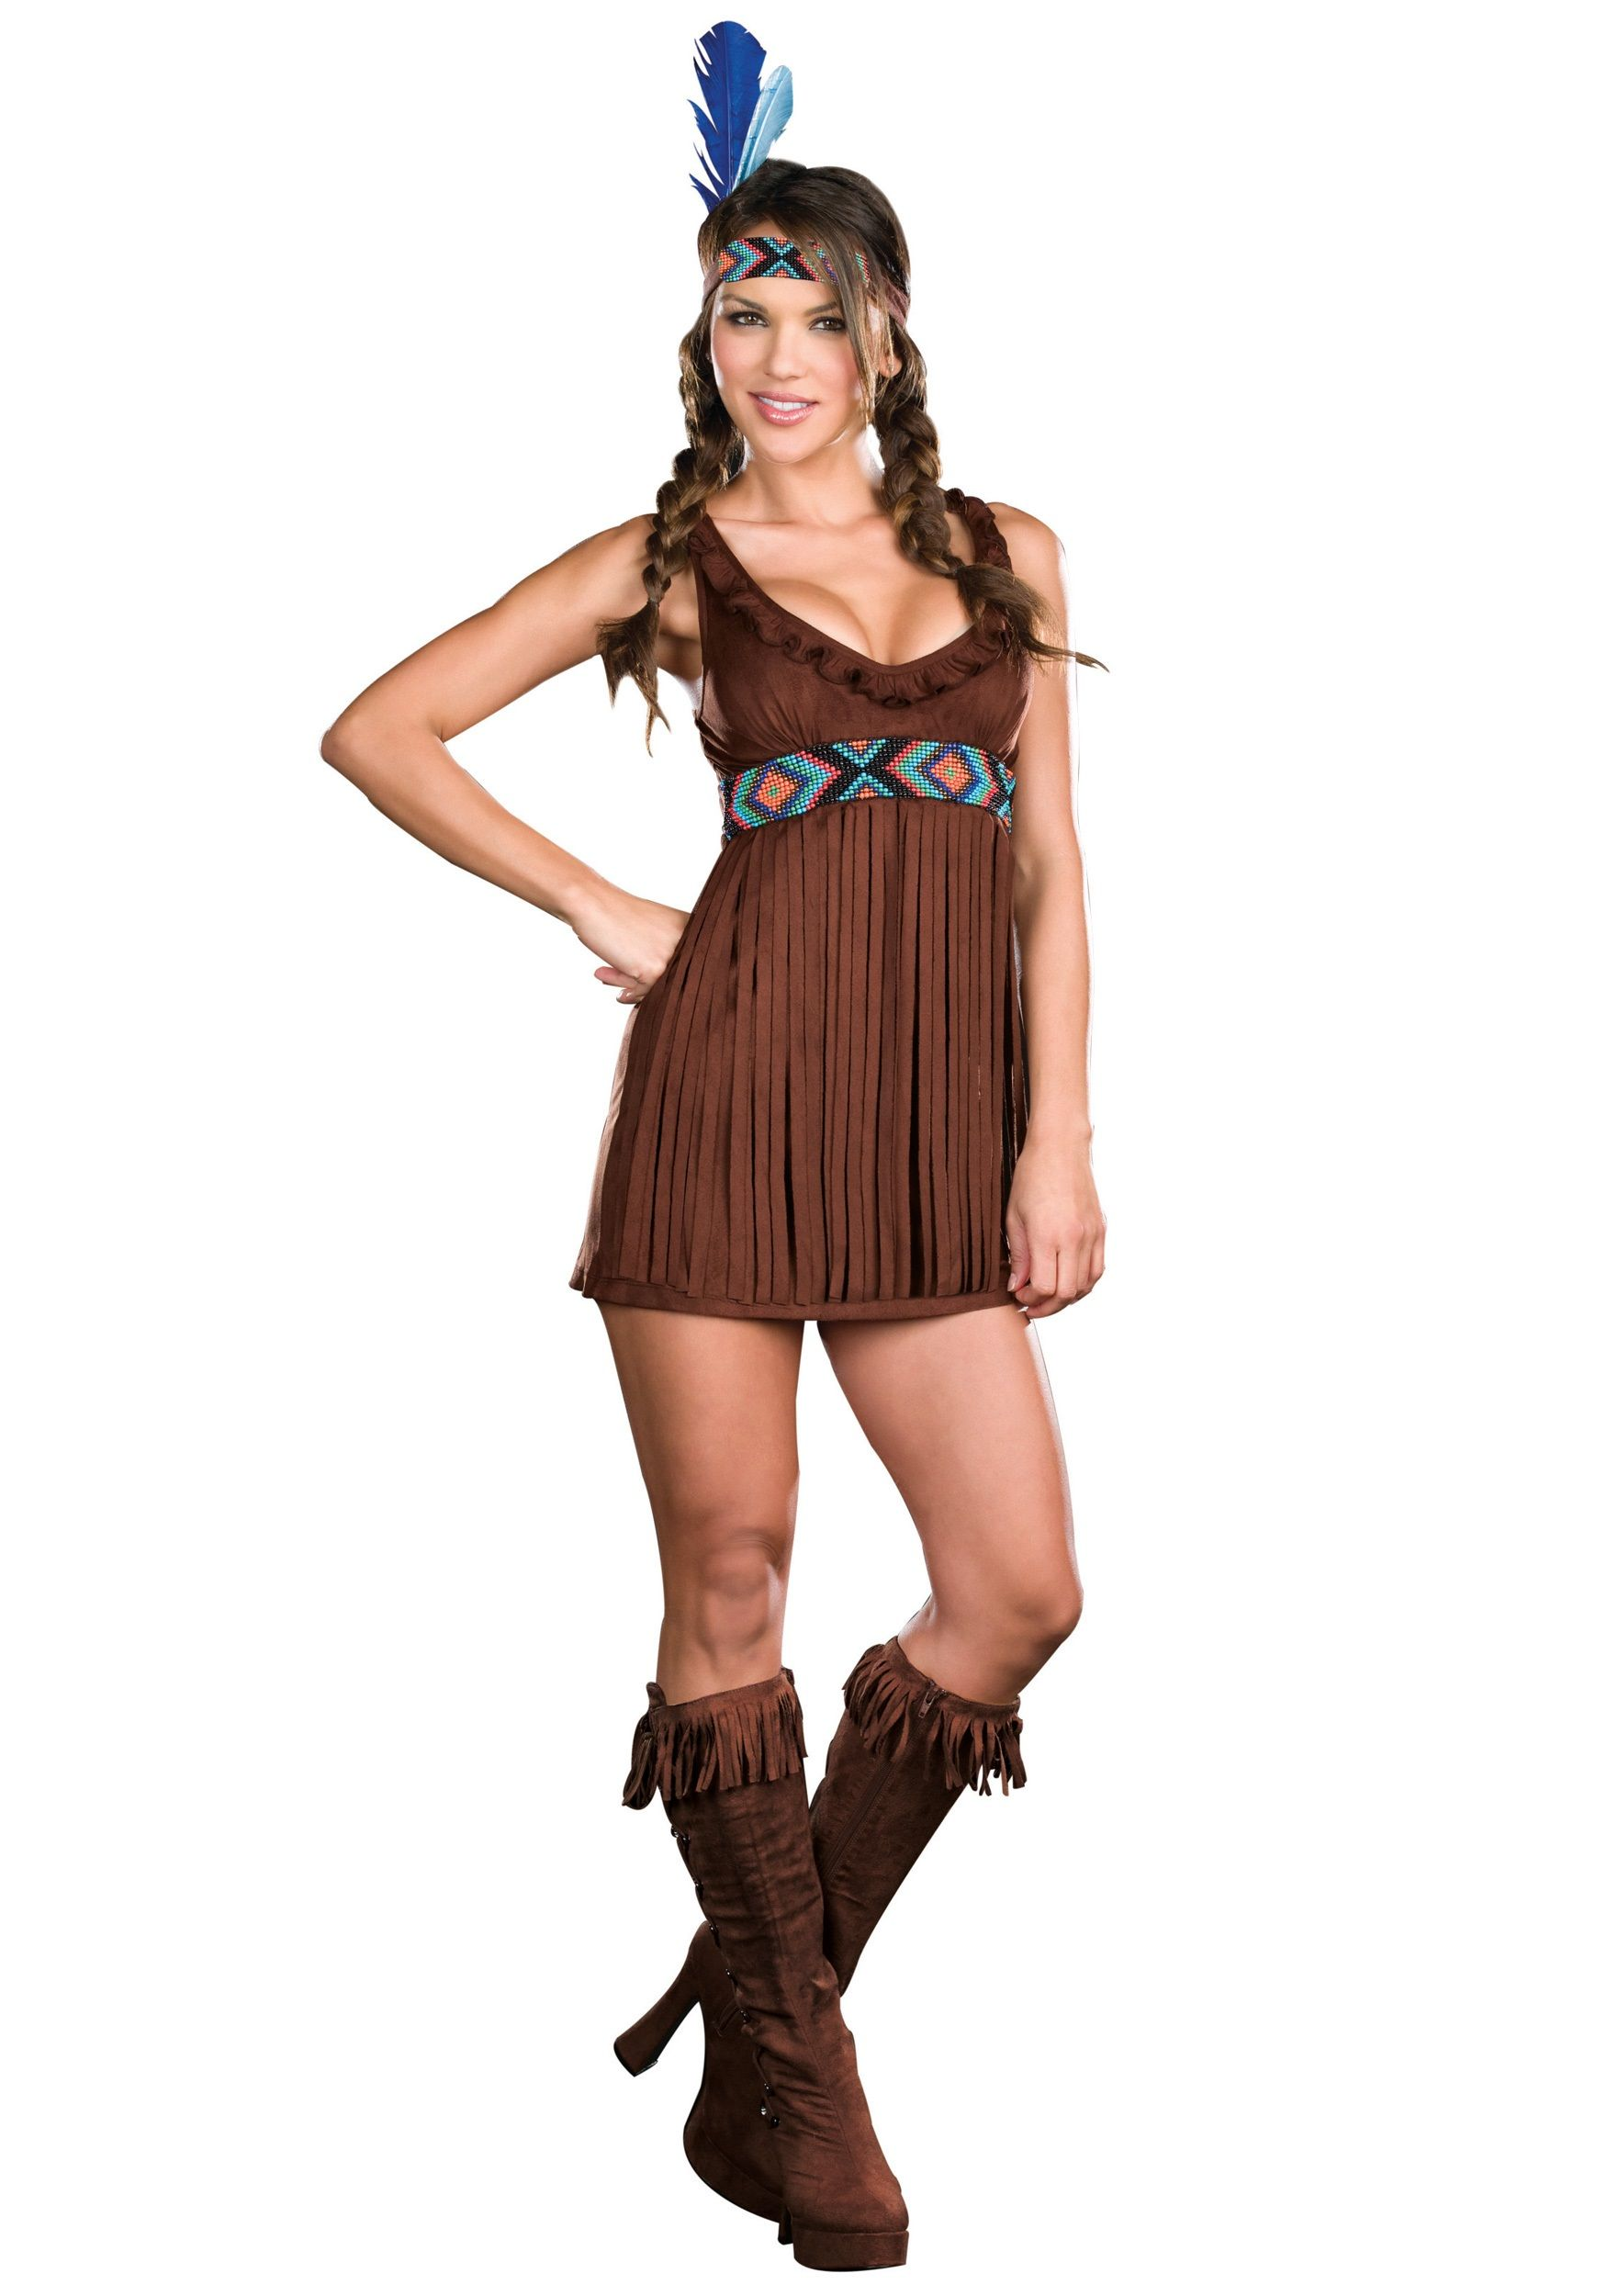 female native american dance costumes rain dance sexy indian costume forplay rain dance native american theater peter pan pinterest native - Native American Costume Halloween